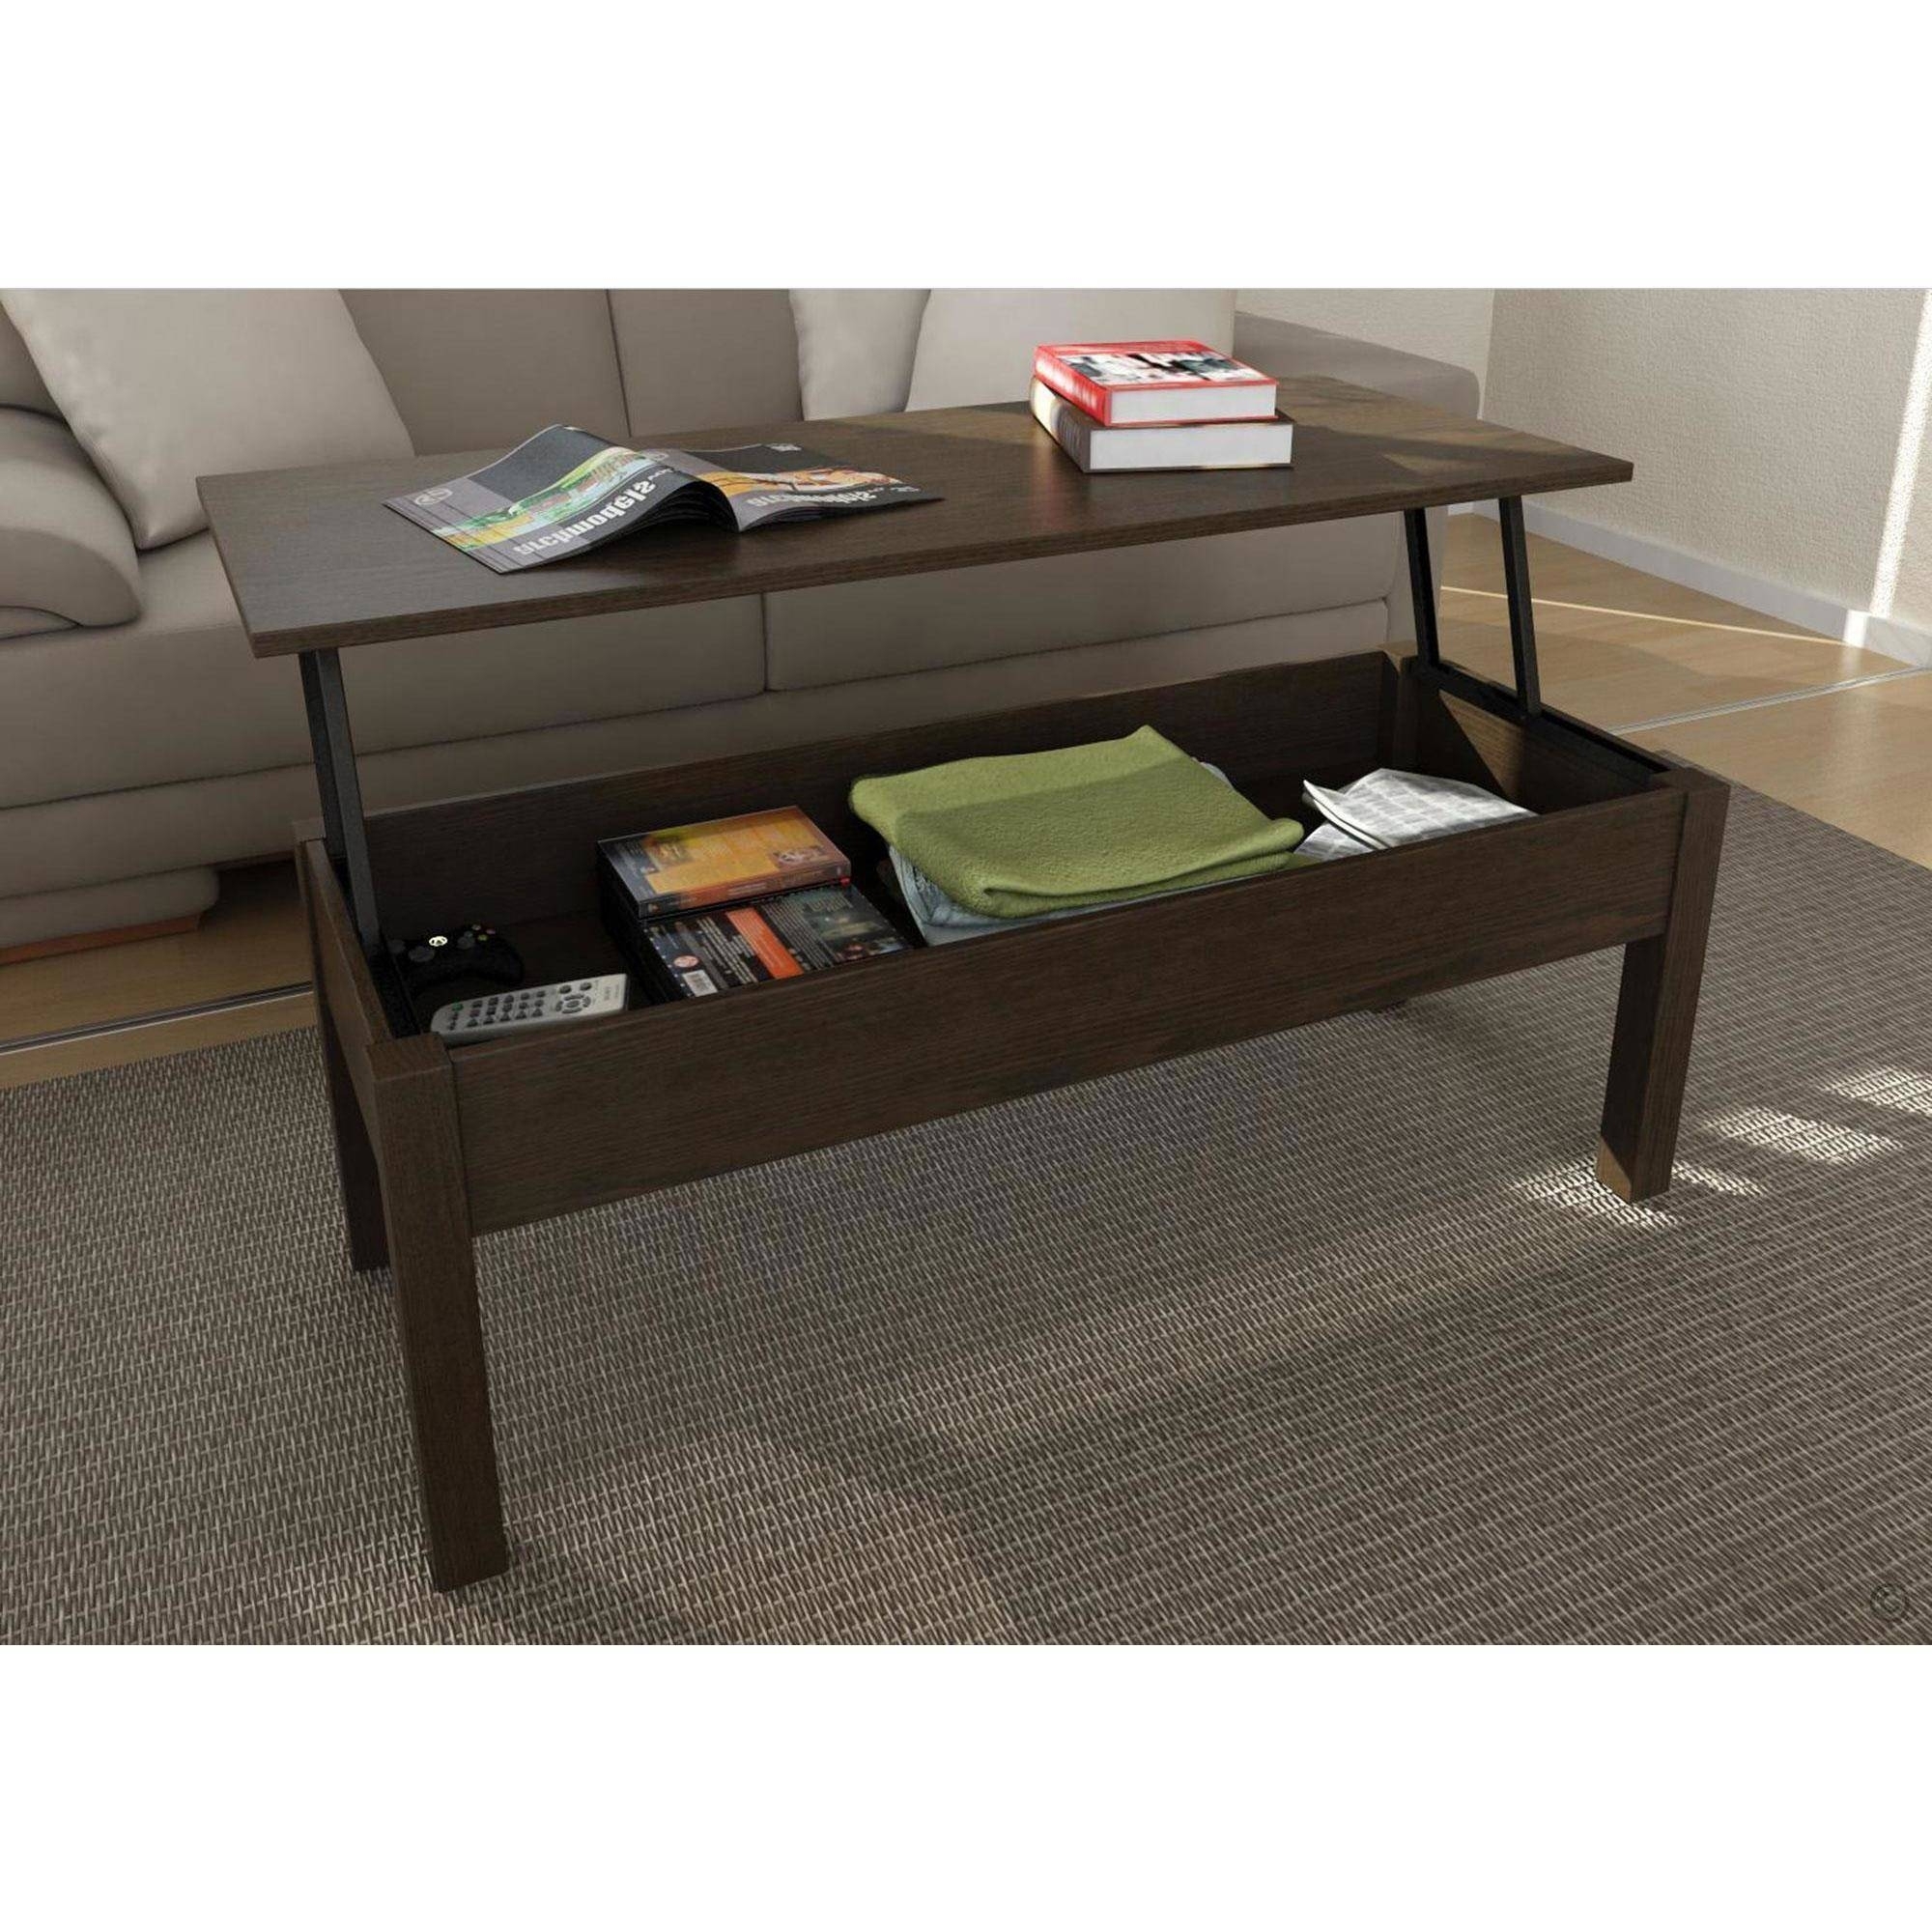 Mainstays Lift Top Coffee Table, Multiple Colors – Walmart Inside Swing Up Coffee Tables (View 18 of 30)